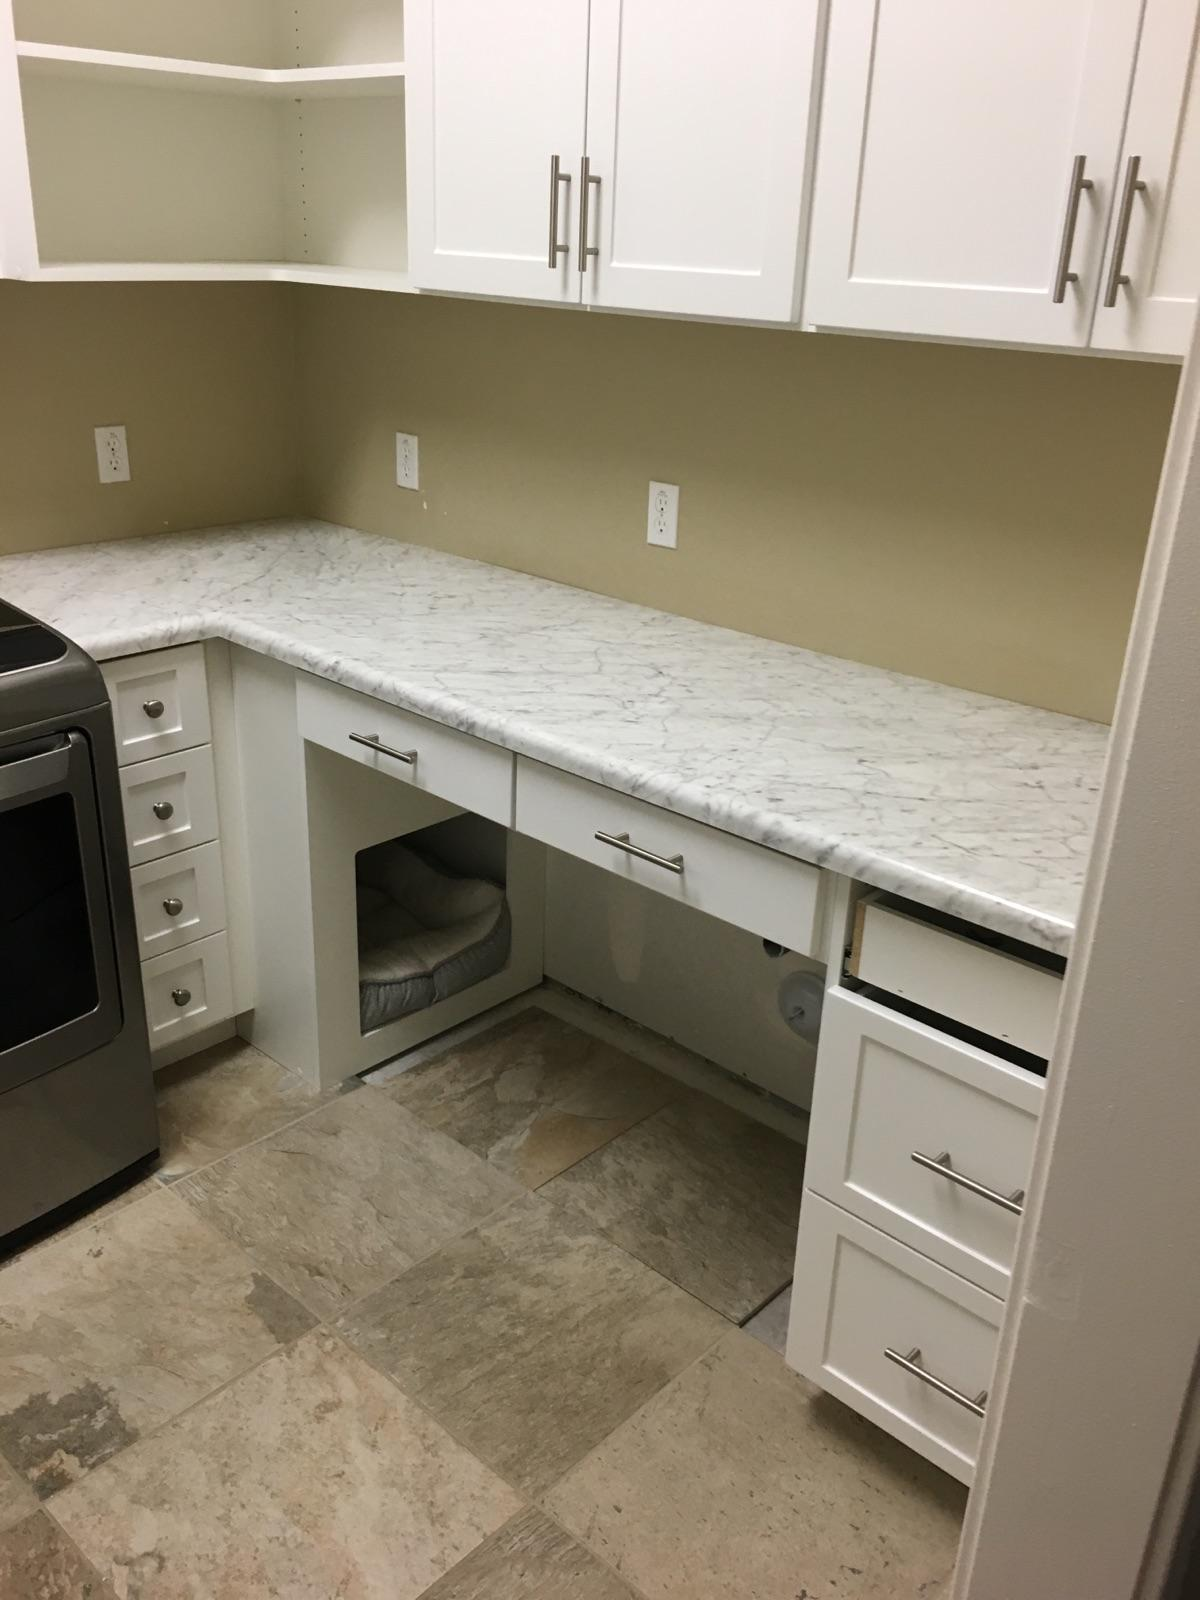 Built Desk And Cabinets